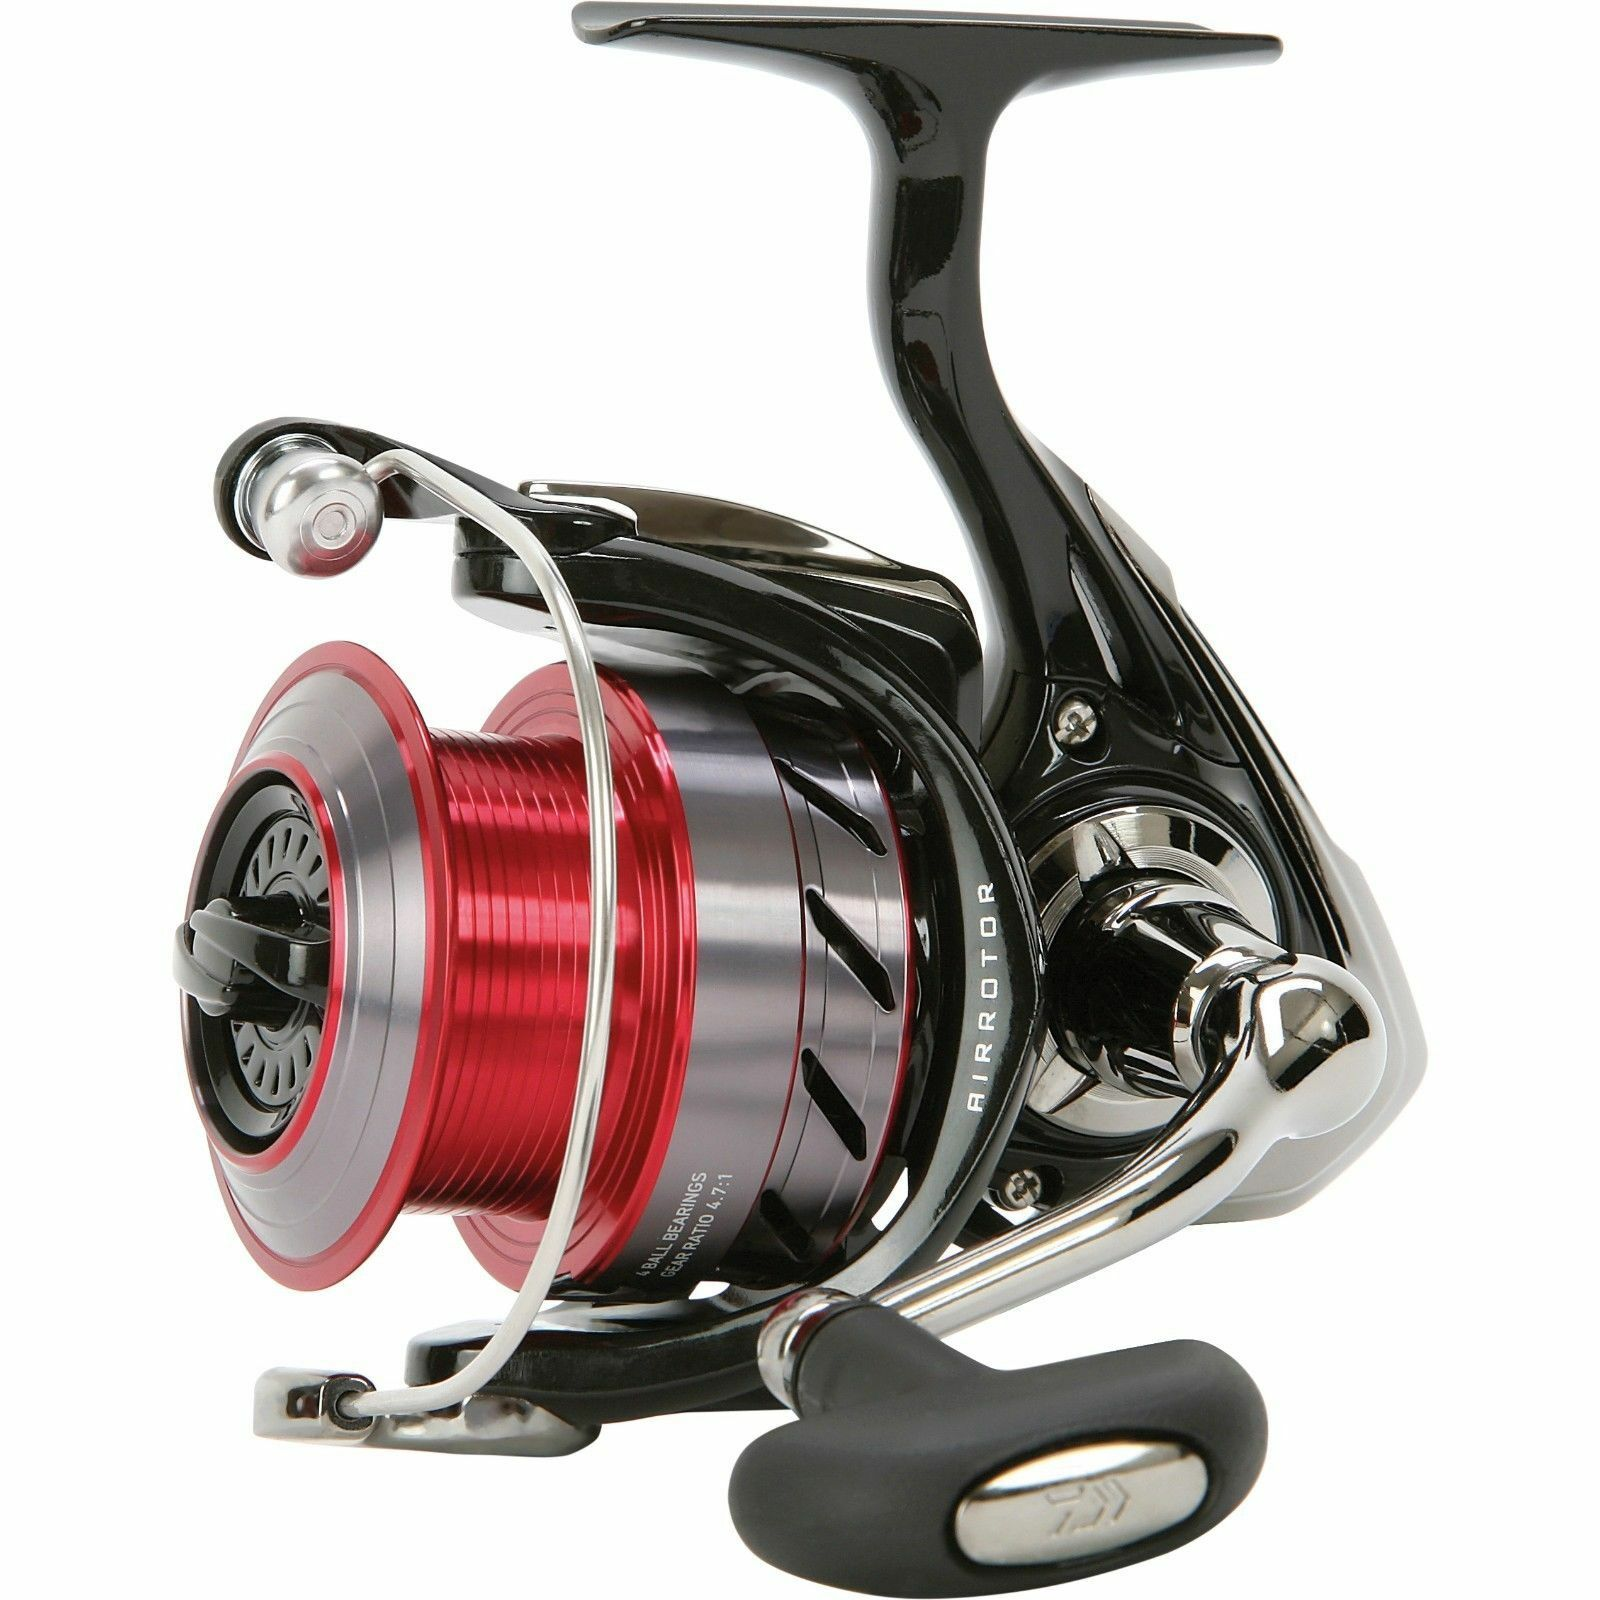 Daiwa Ninja Float Feeder Match Fishing Reels - 2508A,3012A,4000A, 4012A